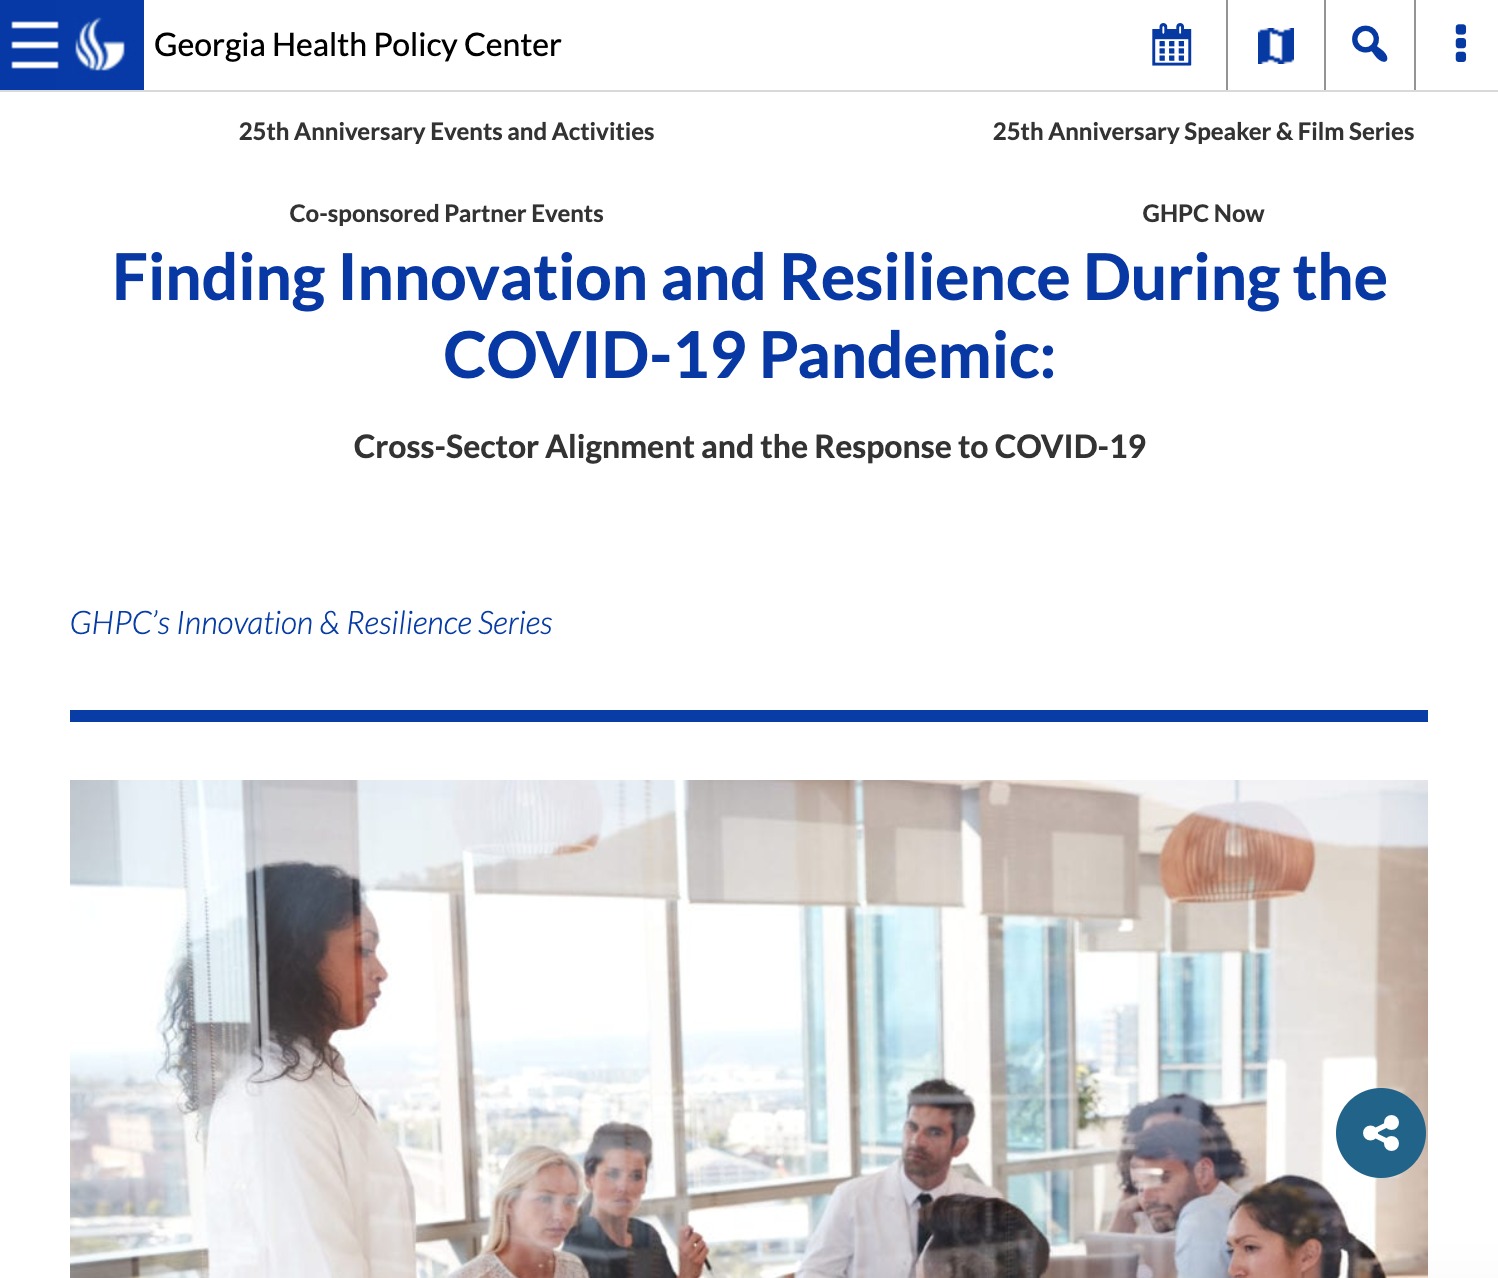 Finding Innovation and Resilience During the COVID-19 Pandemic